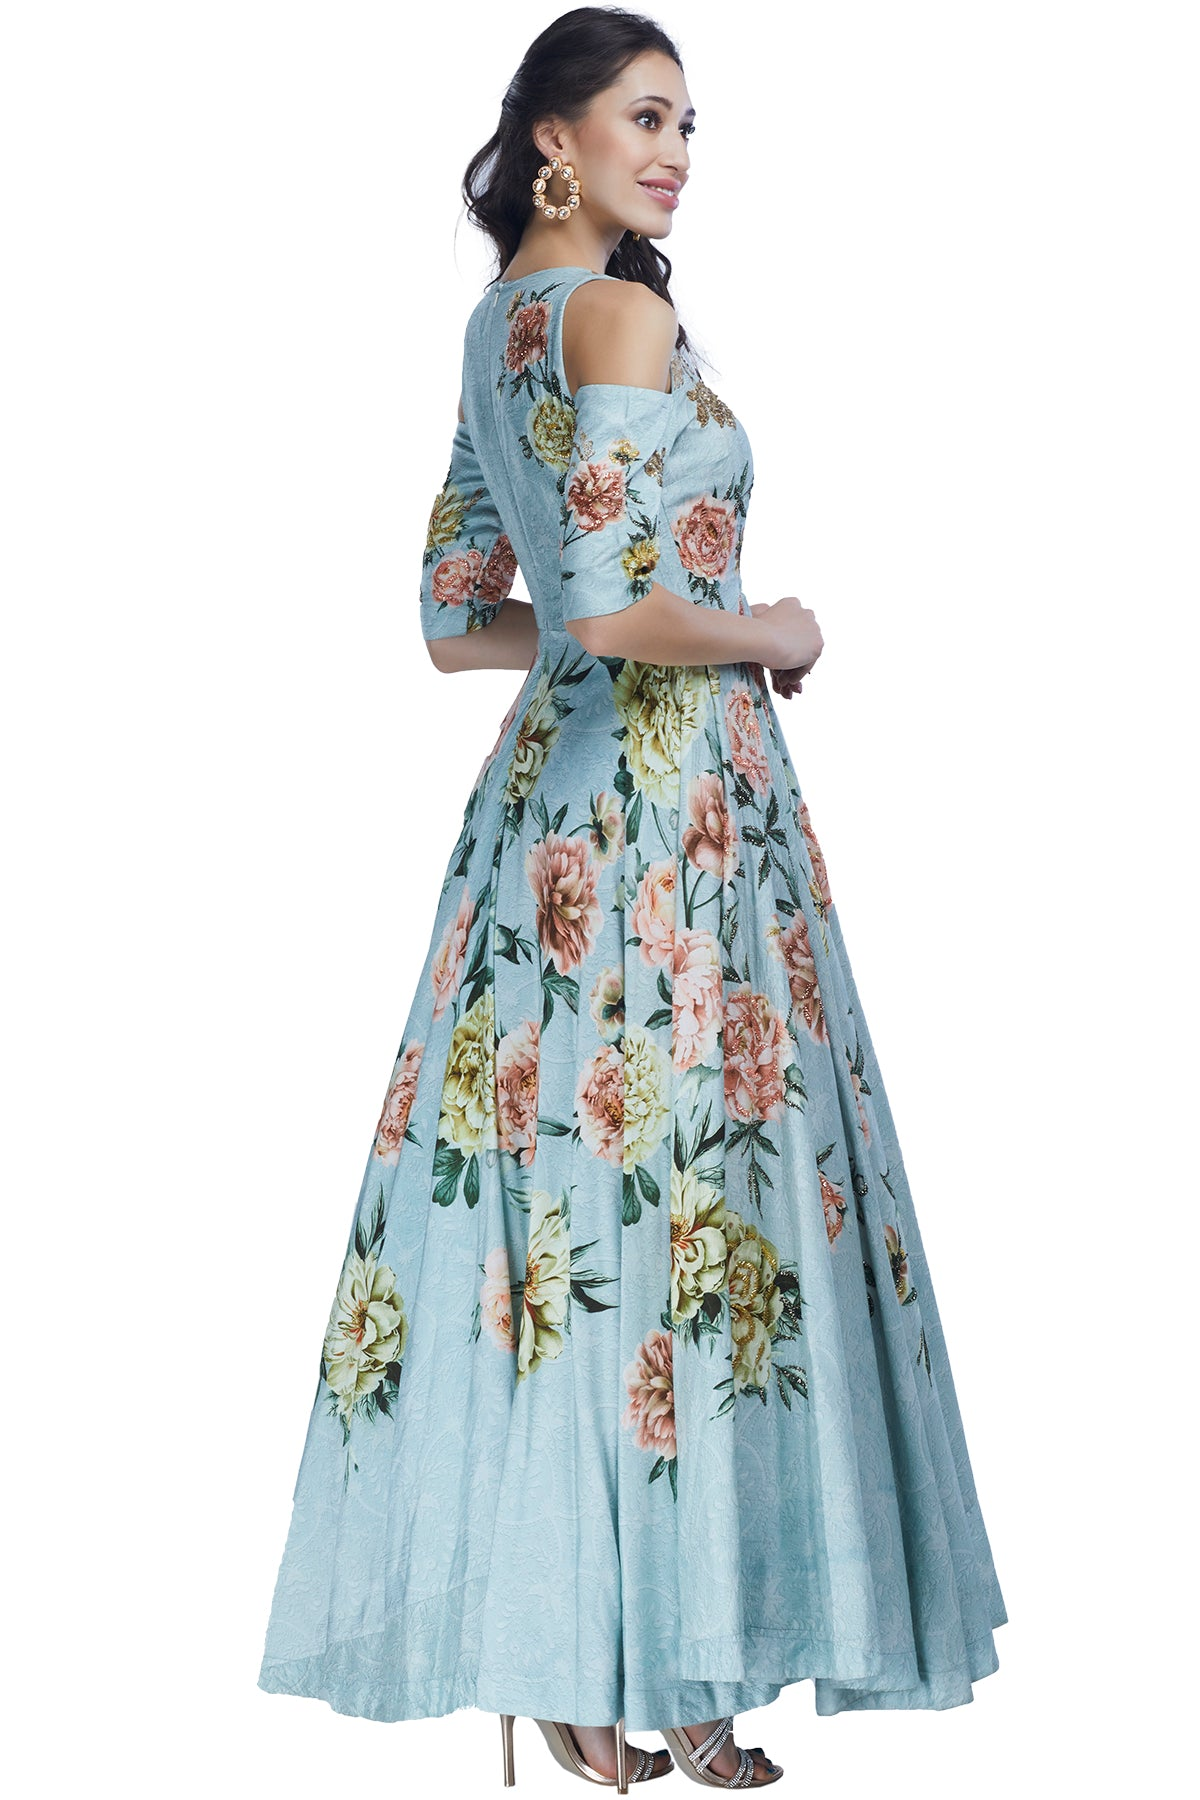 Sky Blue Printed Floral Gown